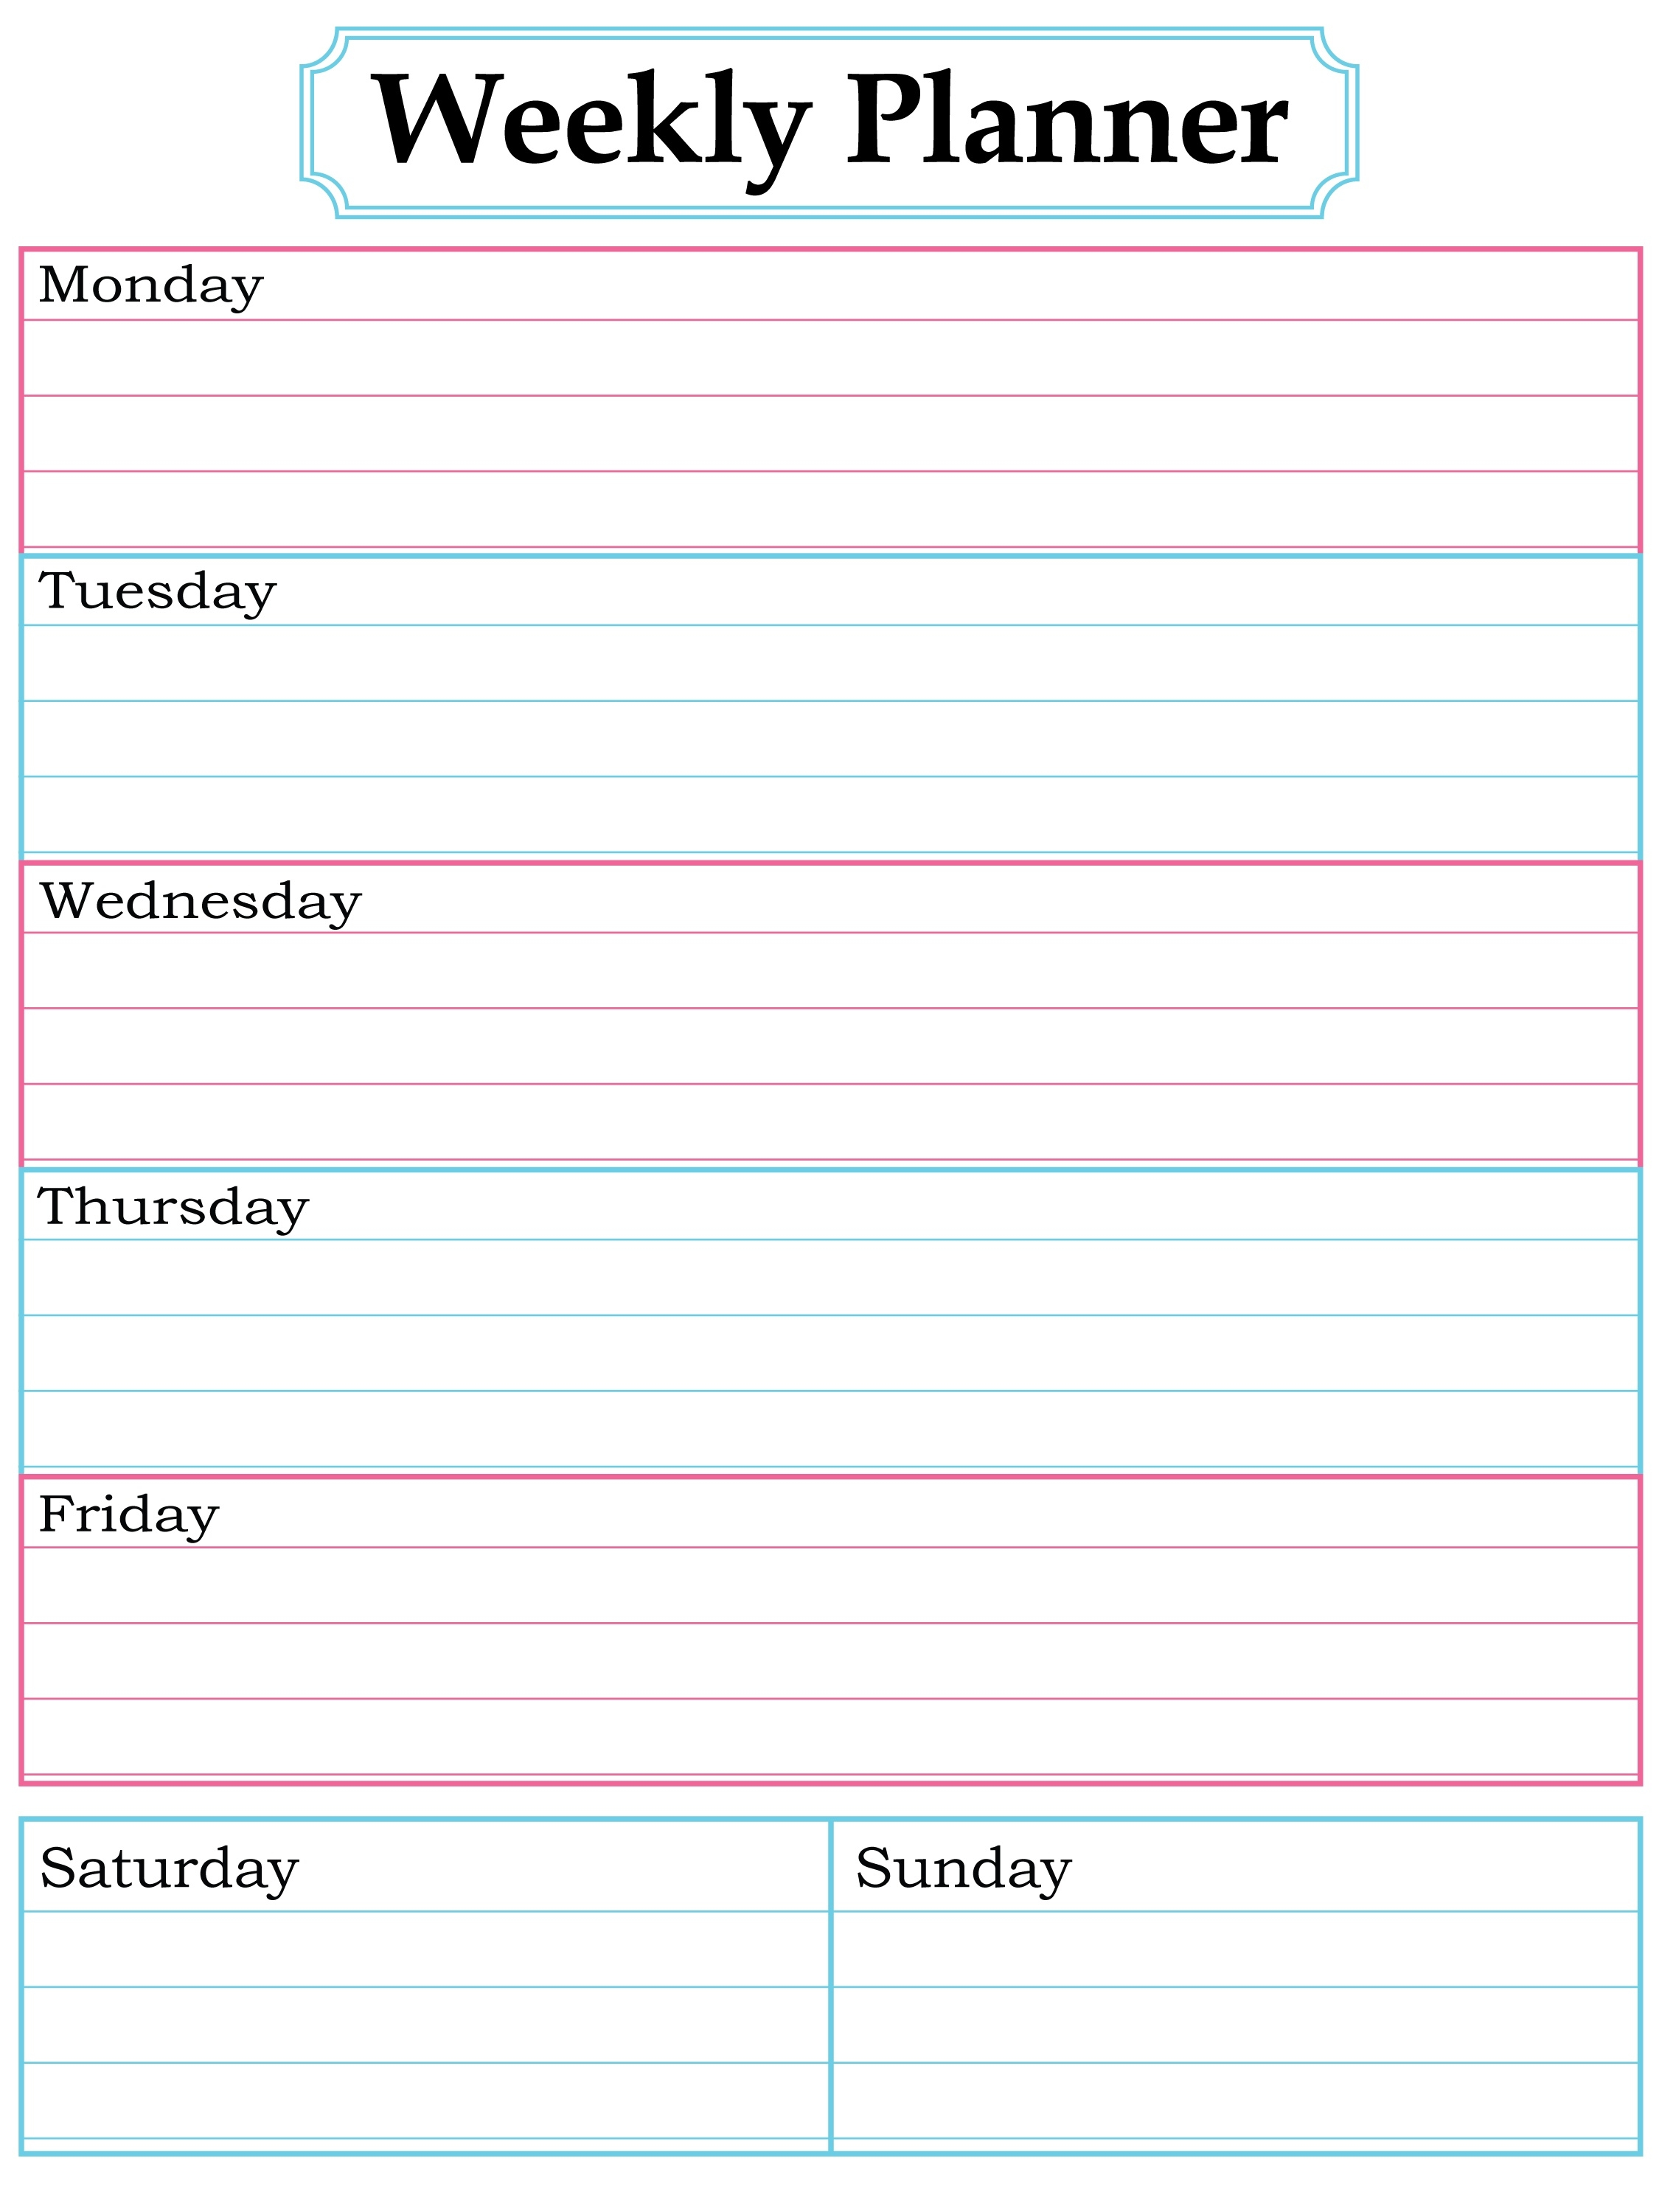 Weekly Monthly Planner Printable - Yeniscale.co  Free Printable Weekly Schedule Planner